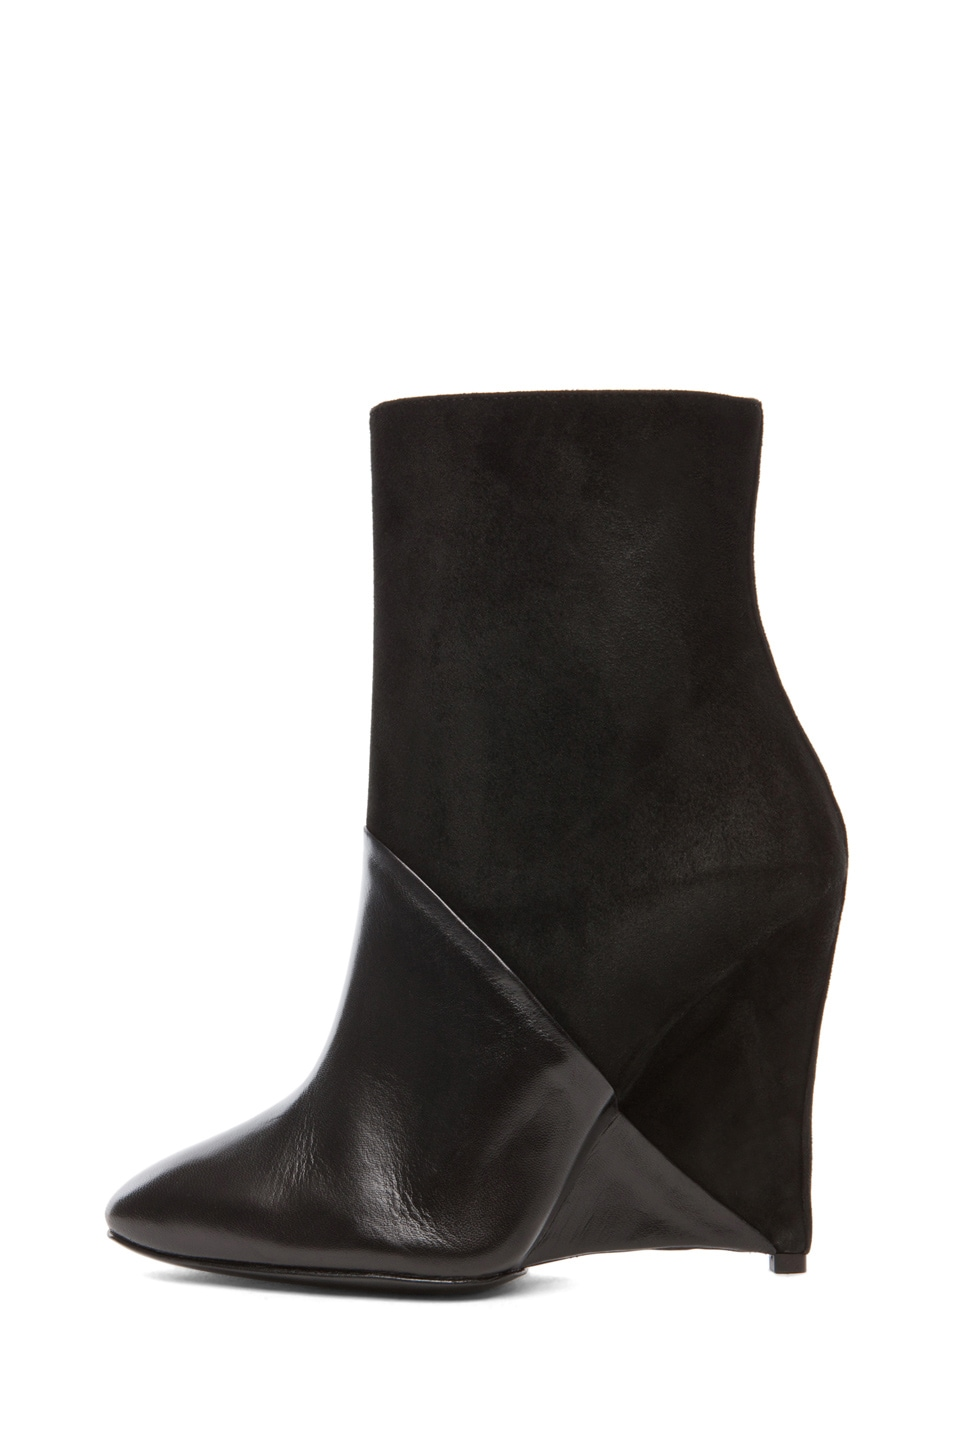 Image 1 of Neil Barrett White Dijon Suede Bootie in Black